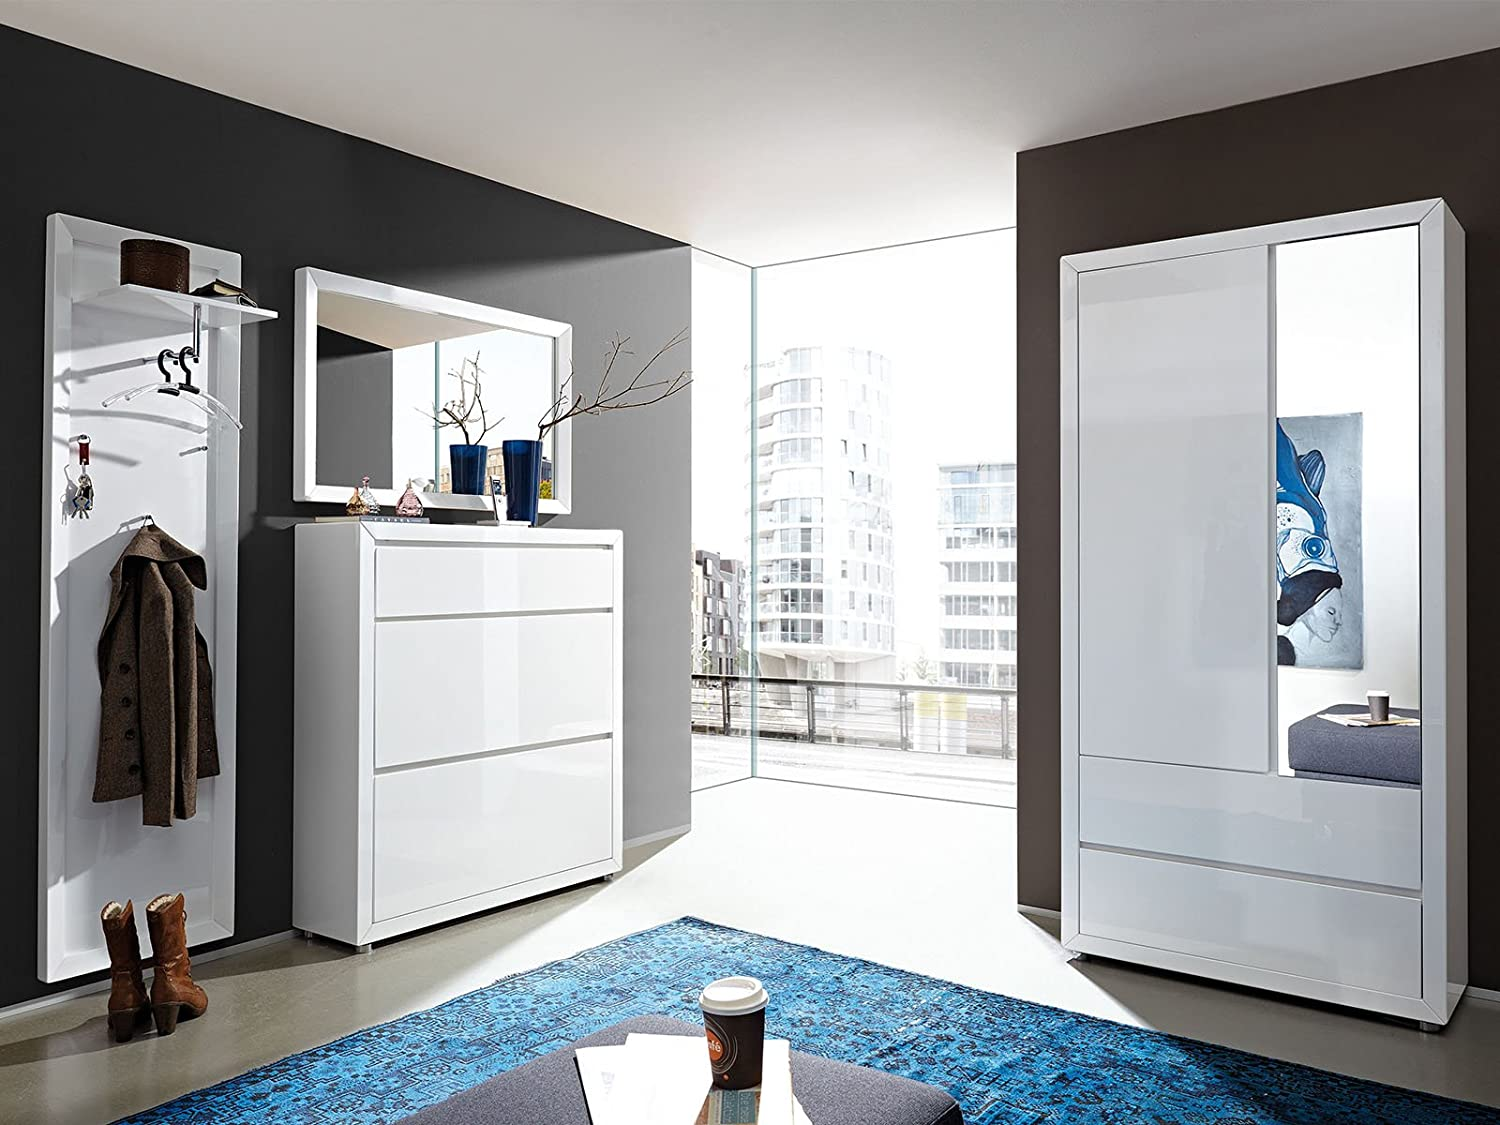 garderobe komplett set trendy garderobe komplett set with garderobe komplett set finest with. Black Bedroom Furniture Sets. Home Design Ideas